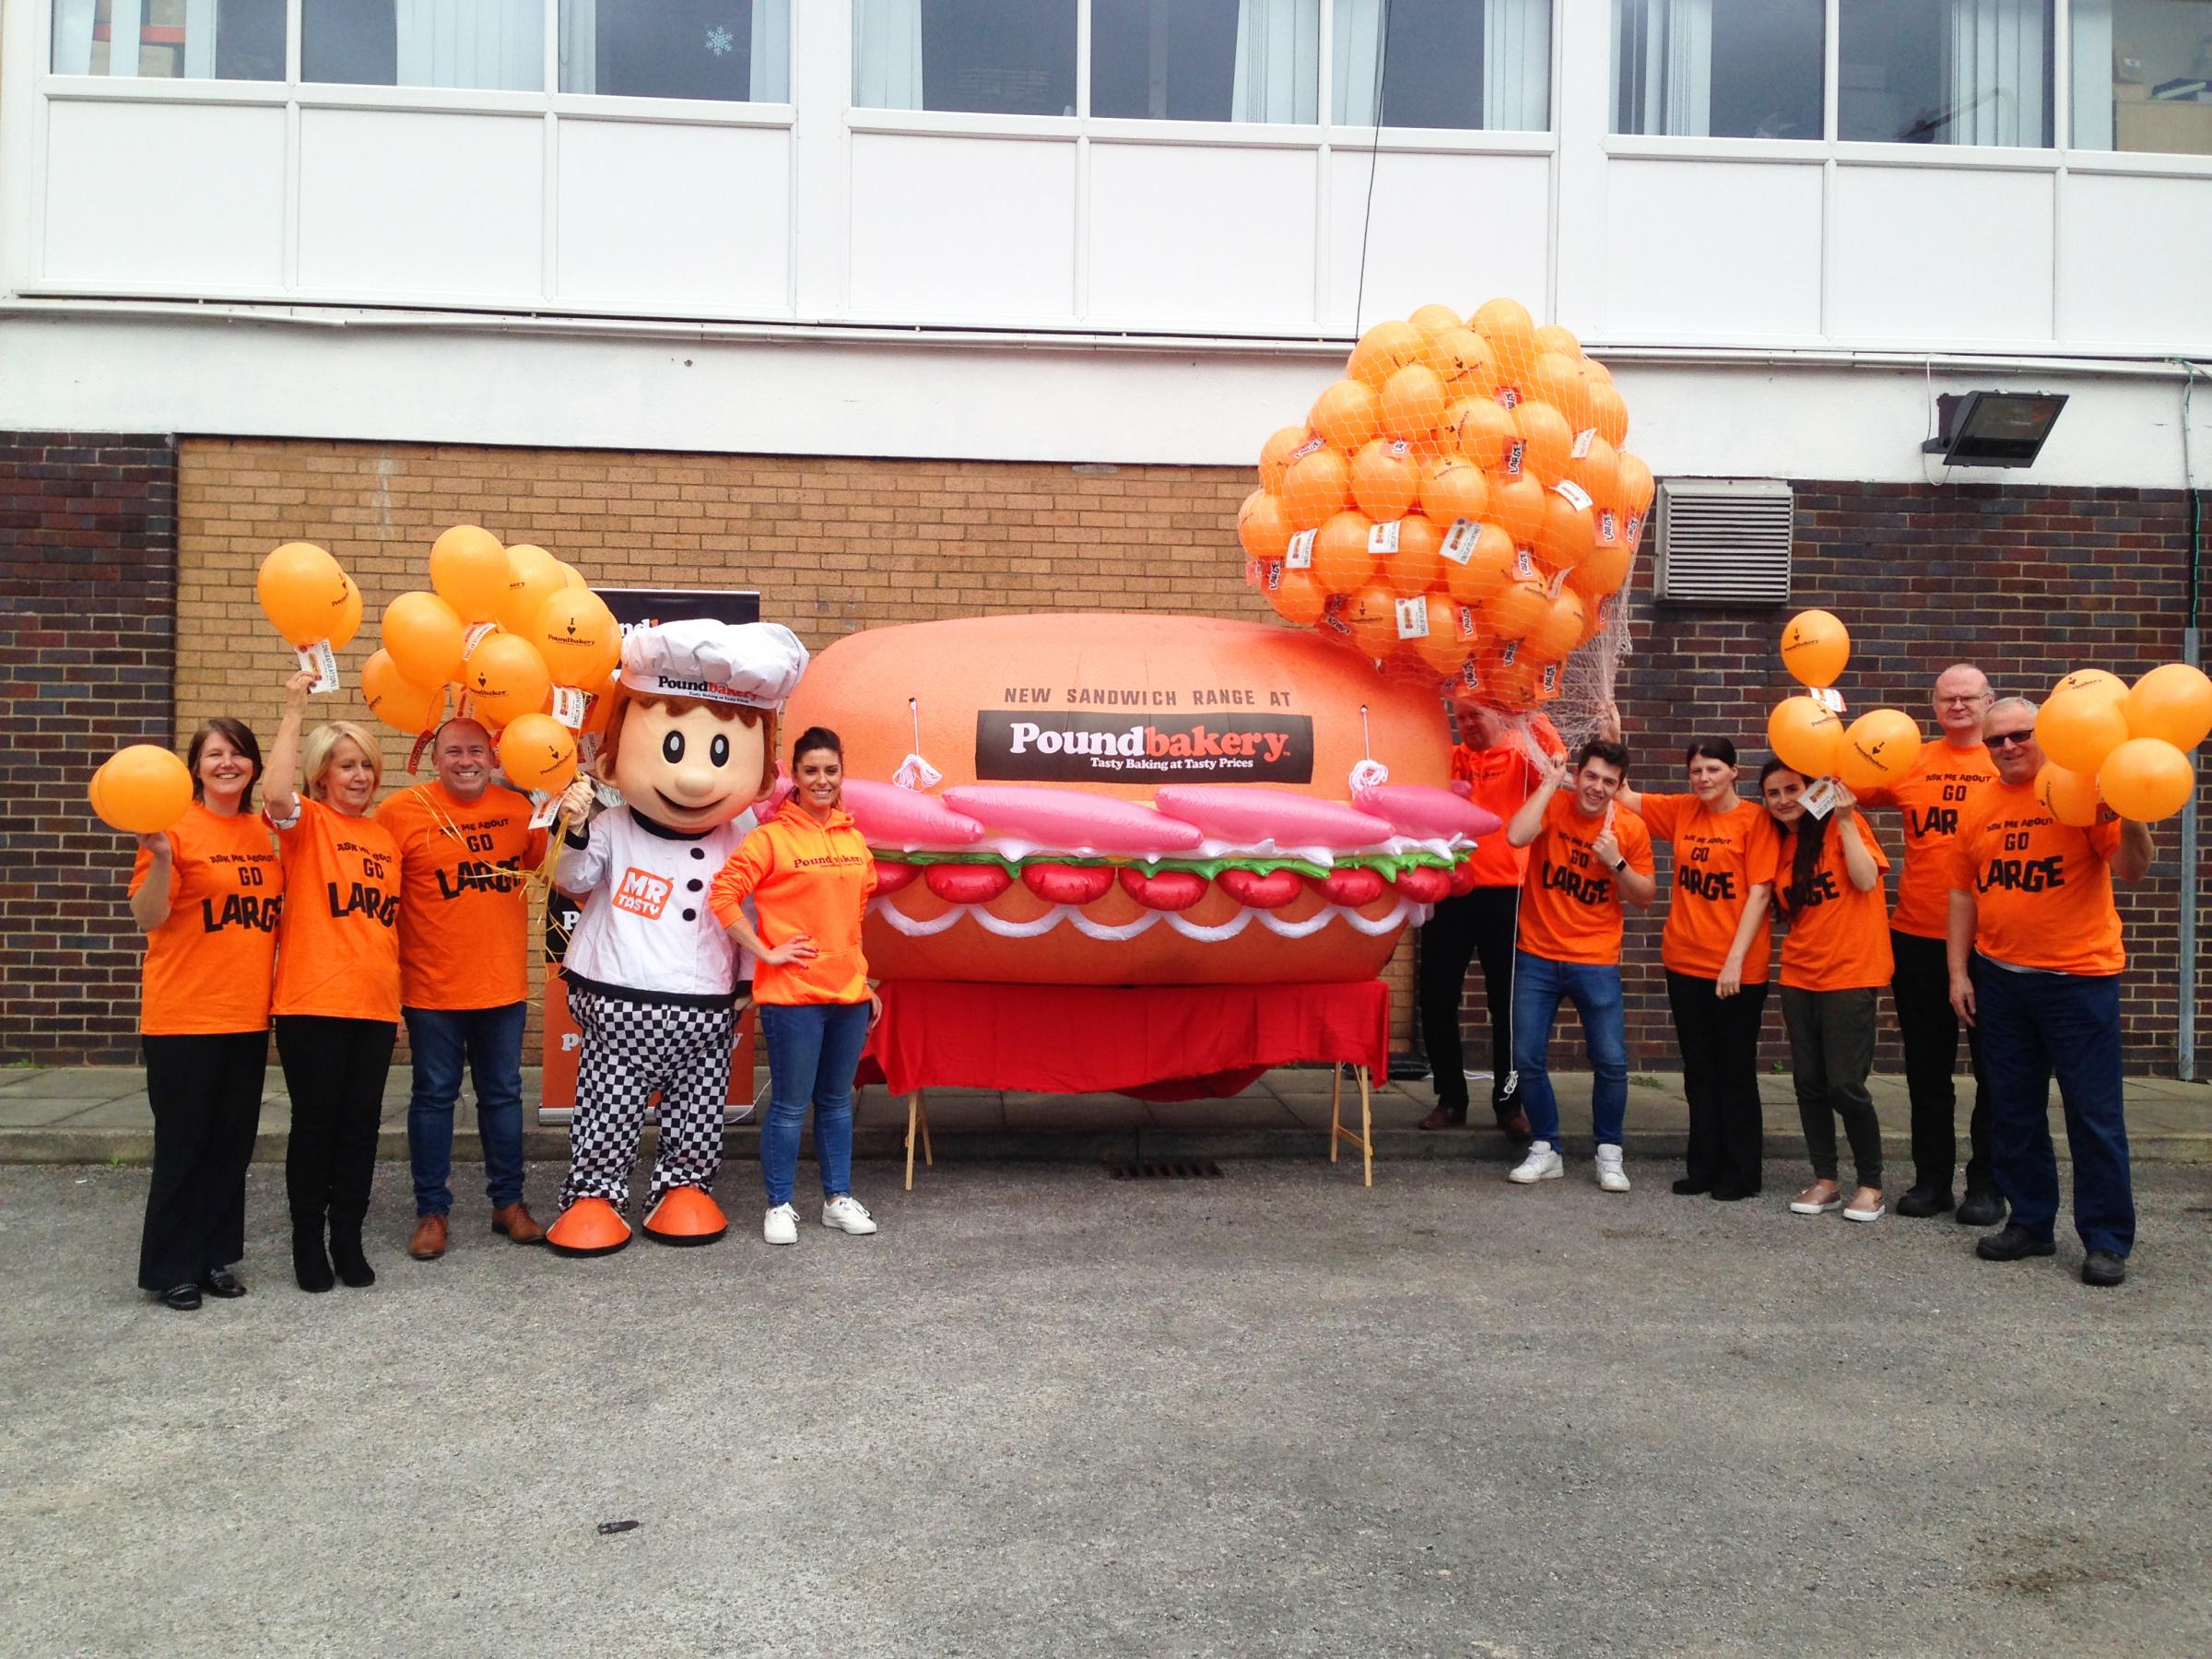 RELEASE: The balloons took flight from the Poundbakery's HQ in Sidney Street, Bolton